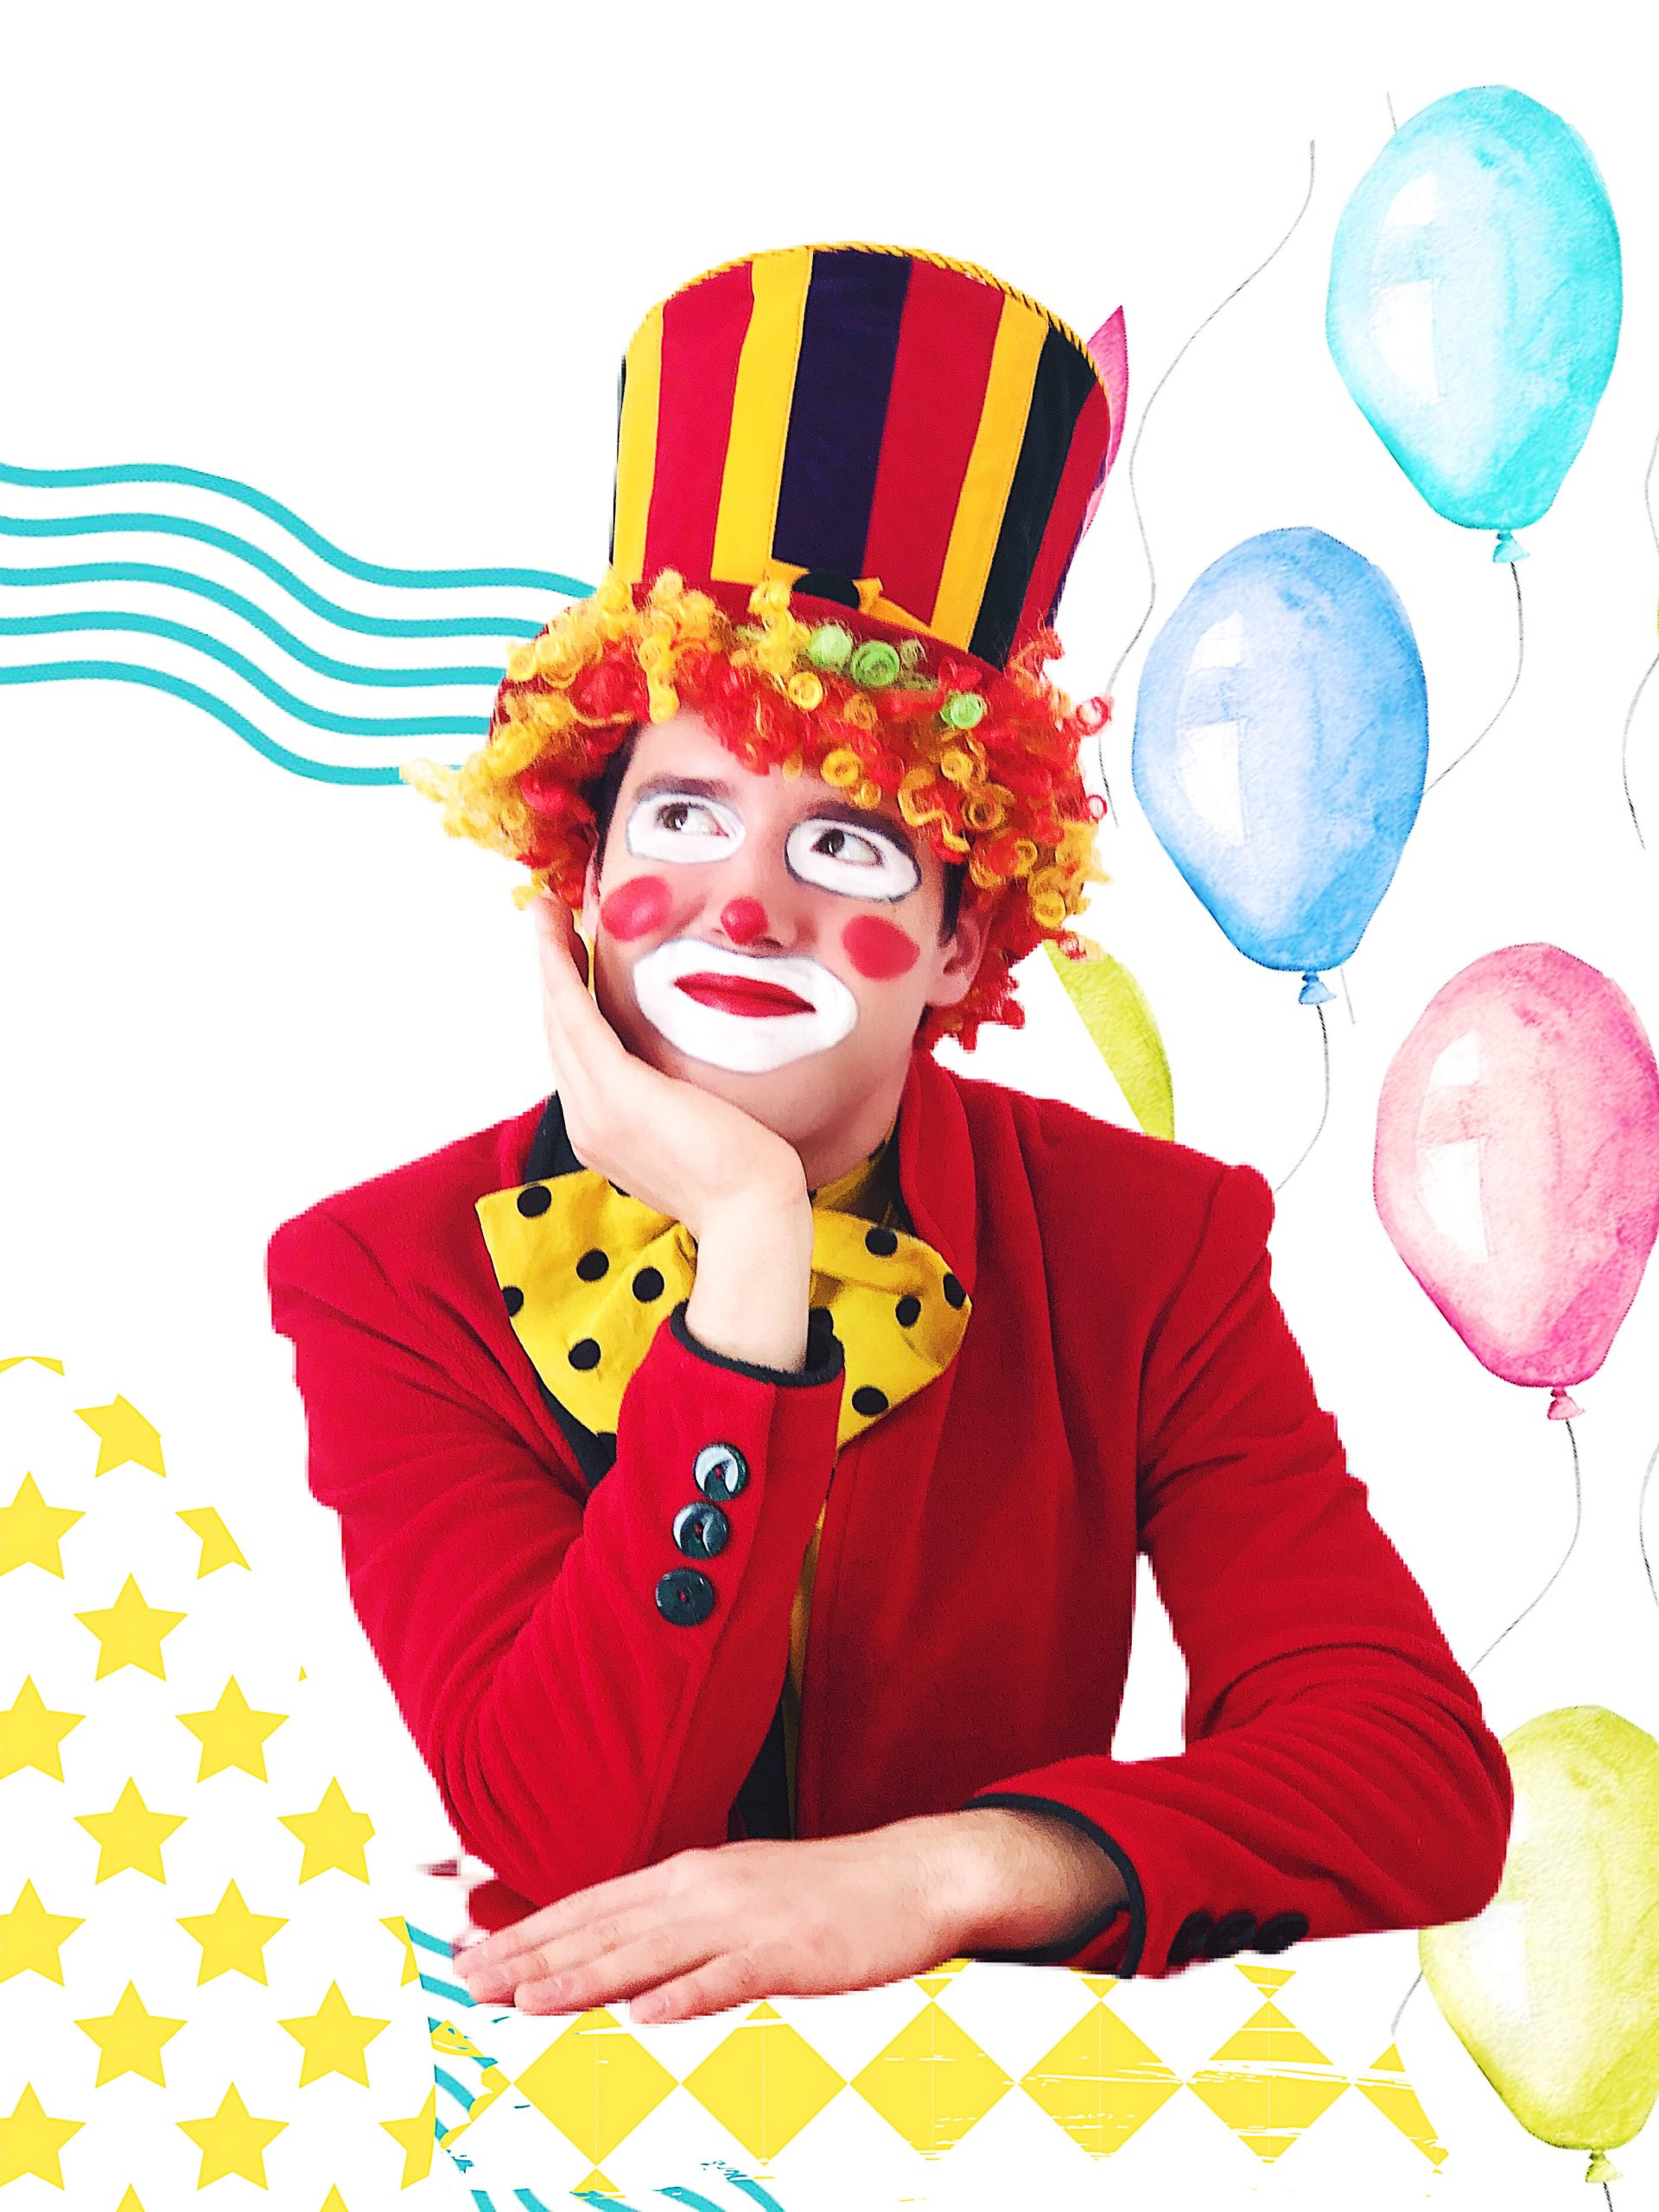 Rico the clown, smiling, and thinking about something